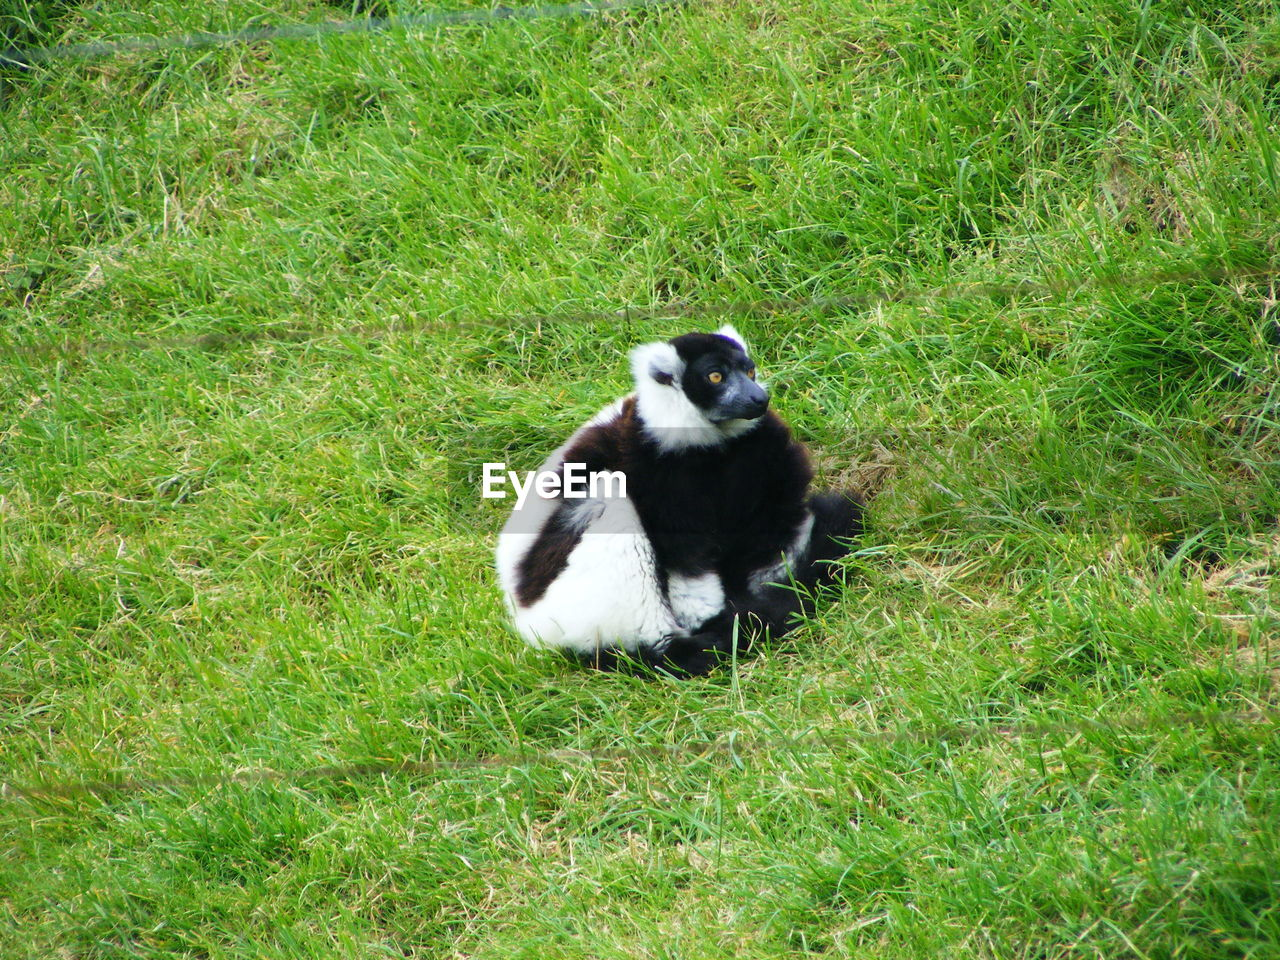 one animal, grass, mammal, plant, vertebrate, animal wildlife, land, animals in the wild, nature, day, field, green color, no people, primate, sitting, lemur, outdoors